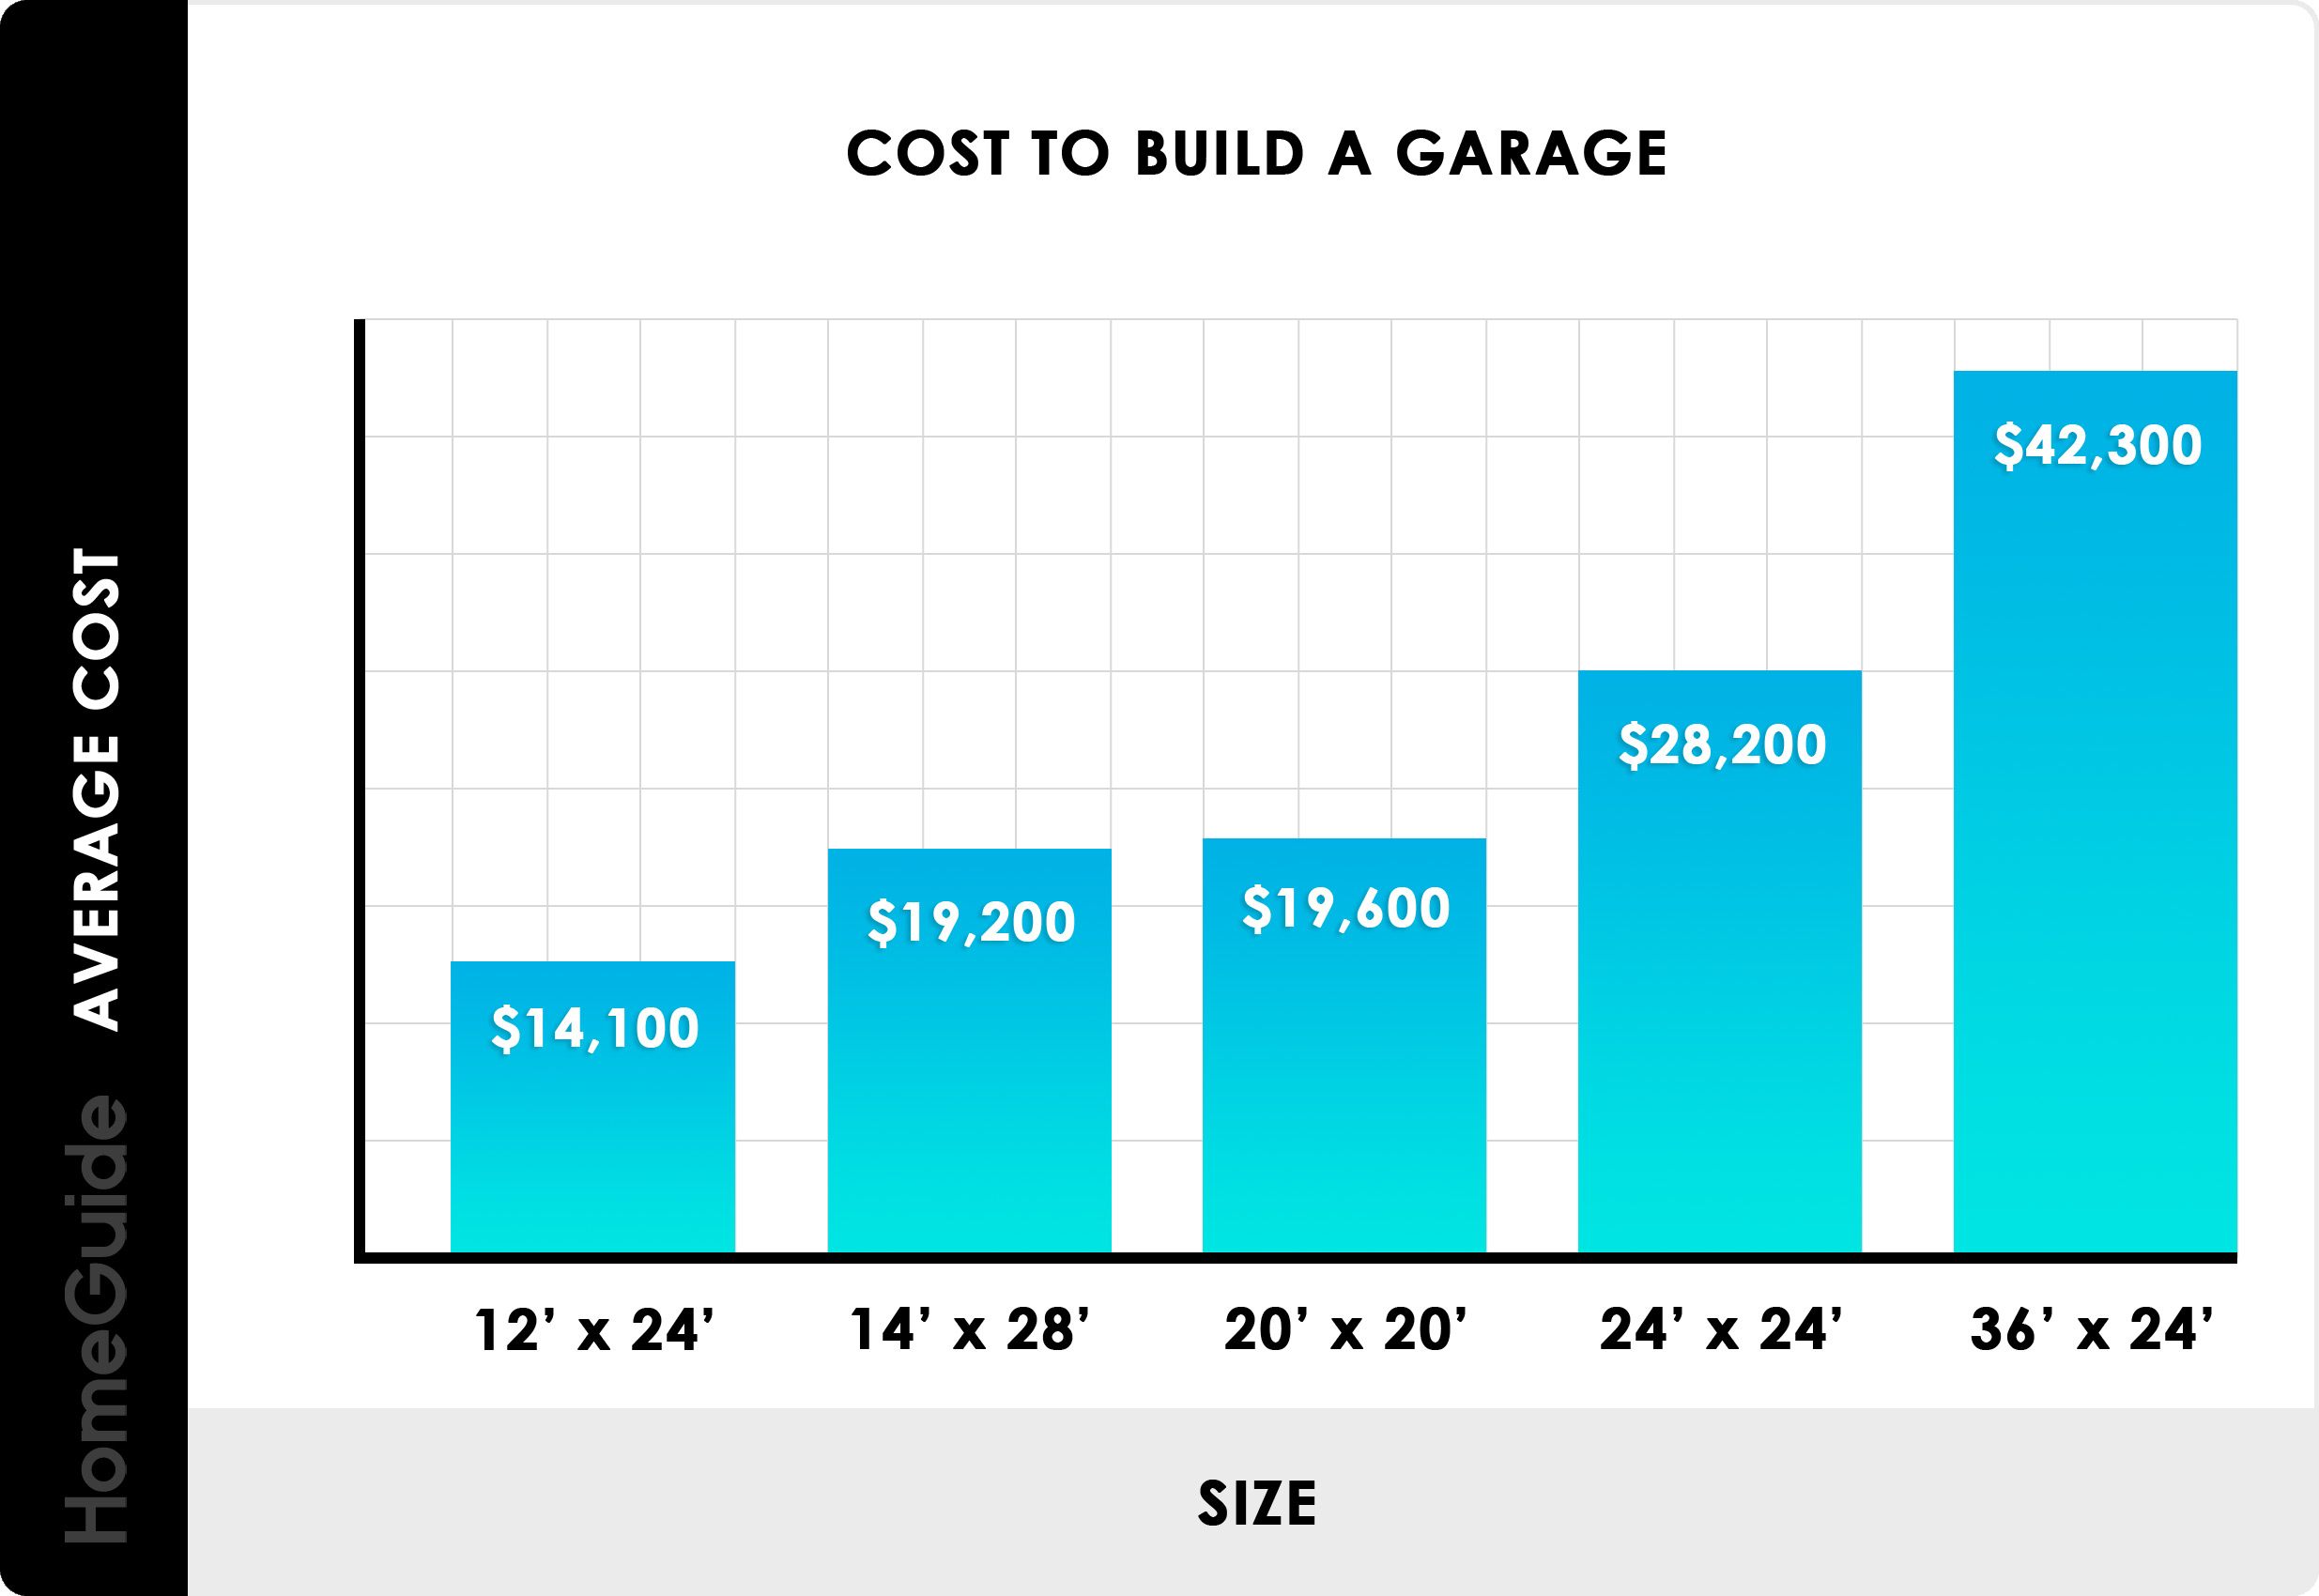 Cost To Build A Garage Per Square Foot Chart